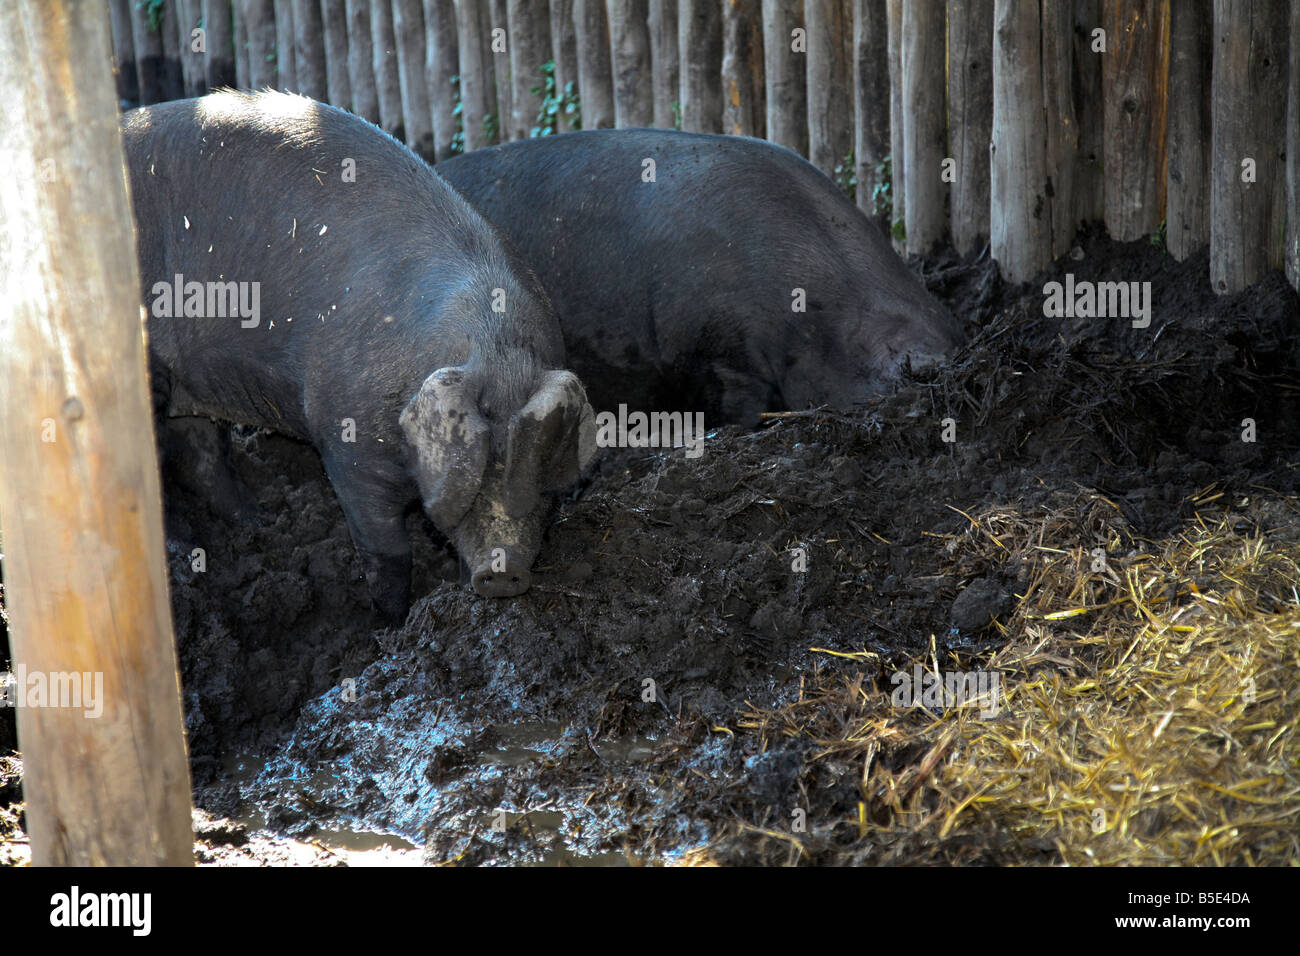 Black Pigs as raised by Huron Indians in 1650-1700 on display at Saint-Marie among the Hurons in Midland Ont - Stock Image